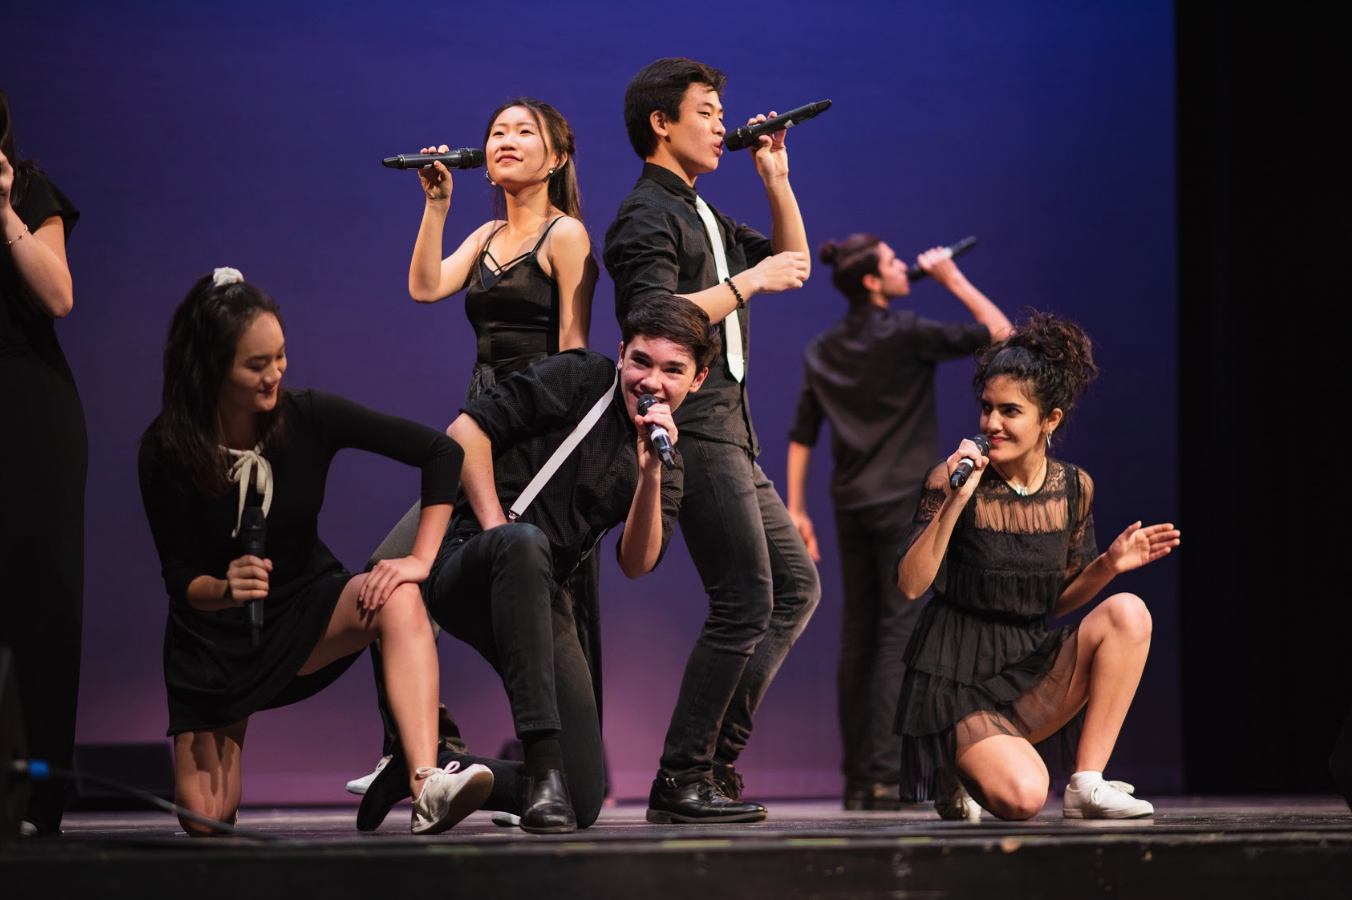 Juniors Katelyn Chen, Joel Morel, Max Lee and seniors Kelsey Wu and Aryana Far strike poses in their a cappella performance. Downbeat members started a cappella training as early as a year ago.